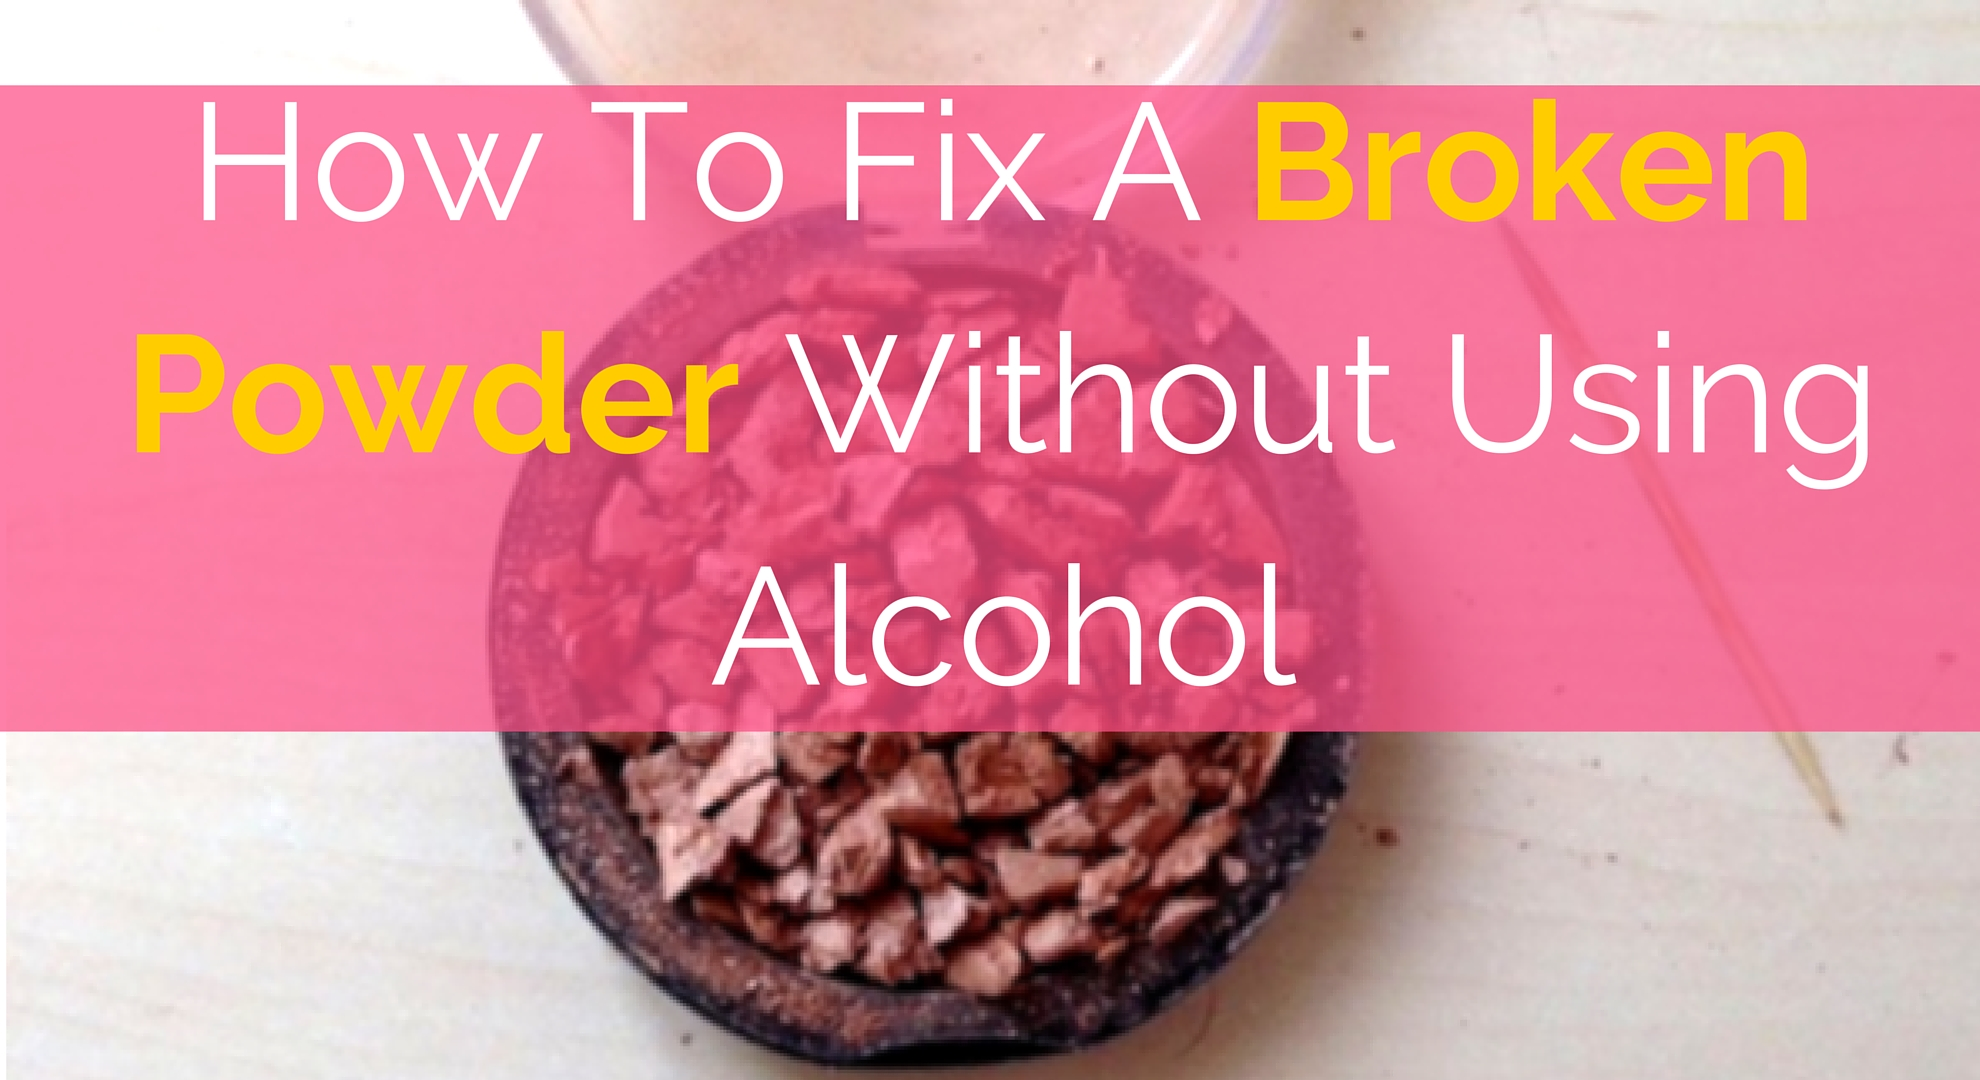 How To Fix A Broken Powder Without Using Alcohol